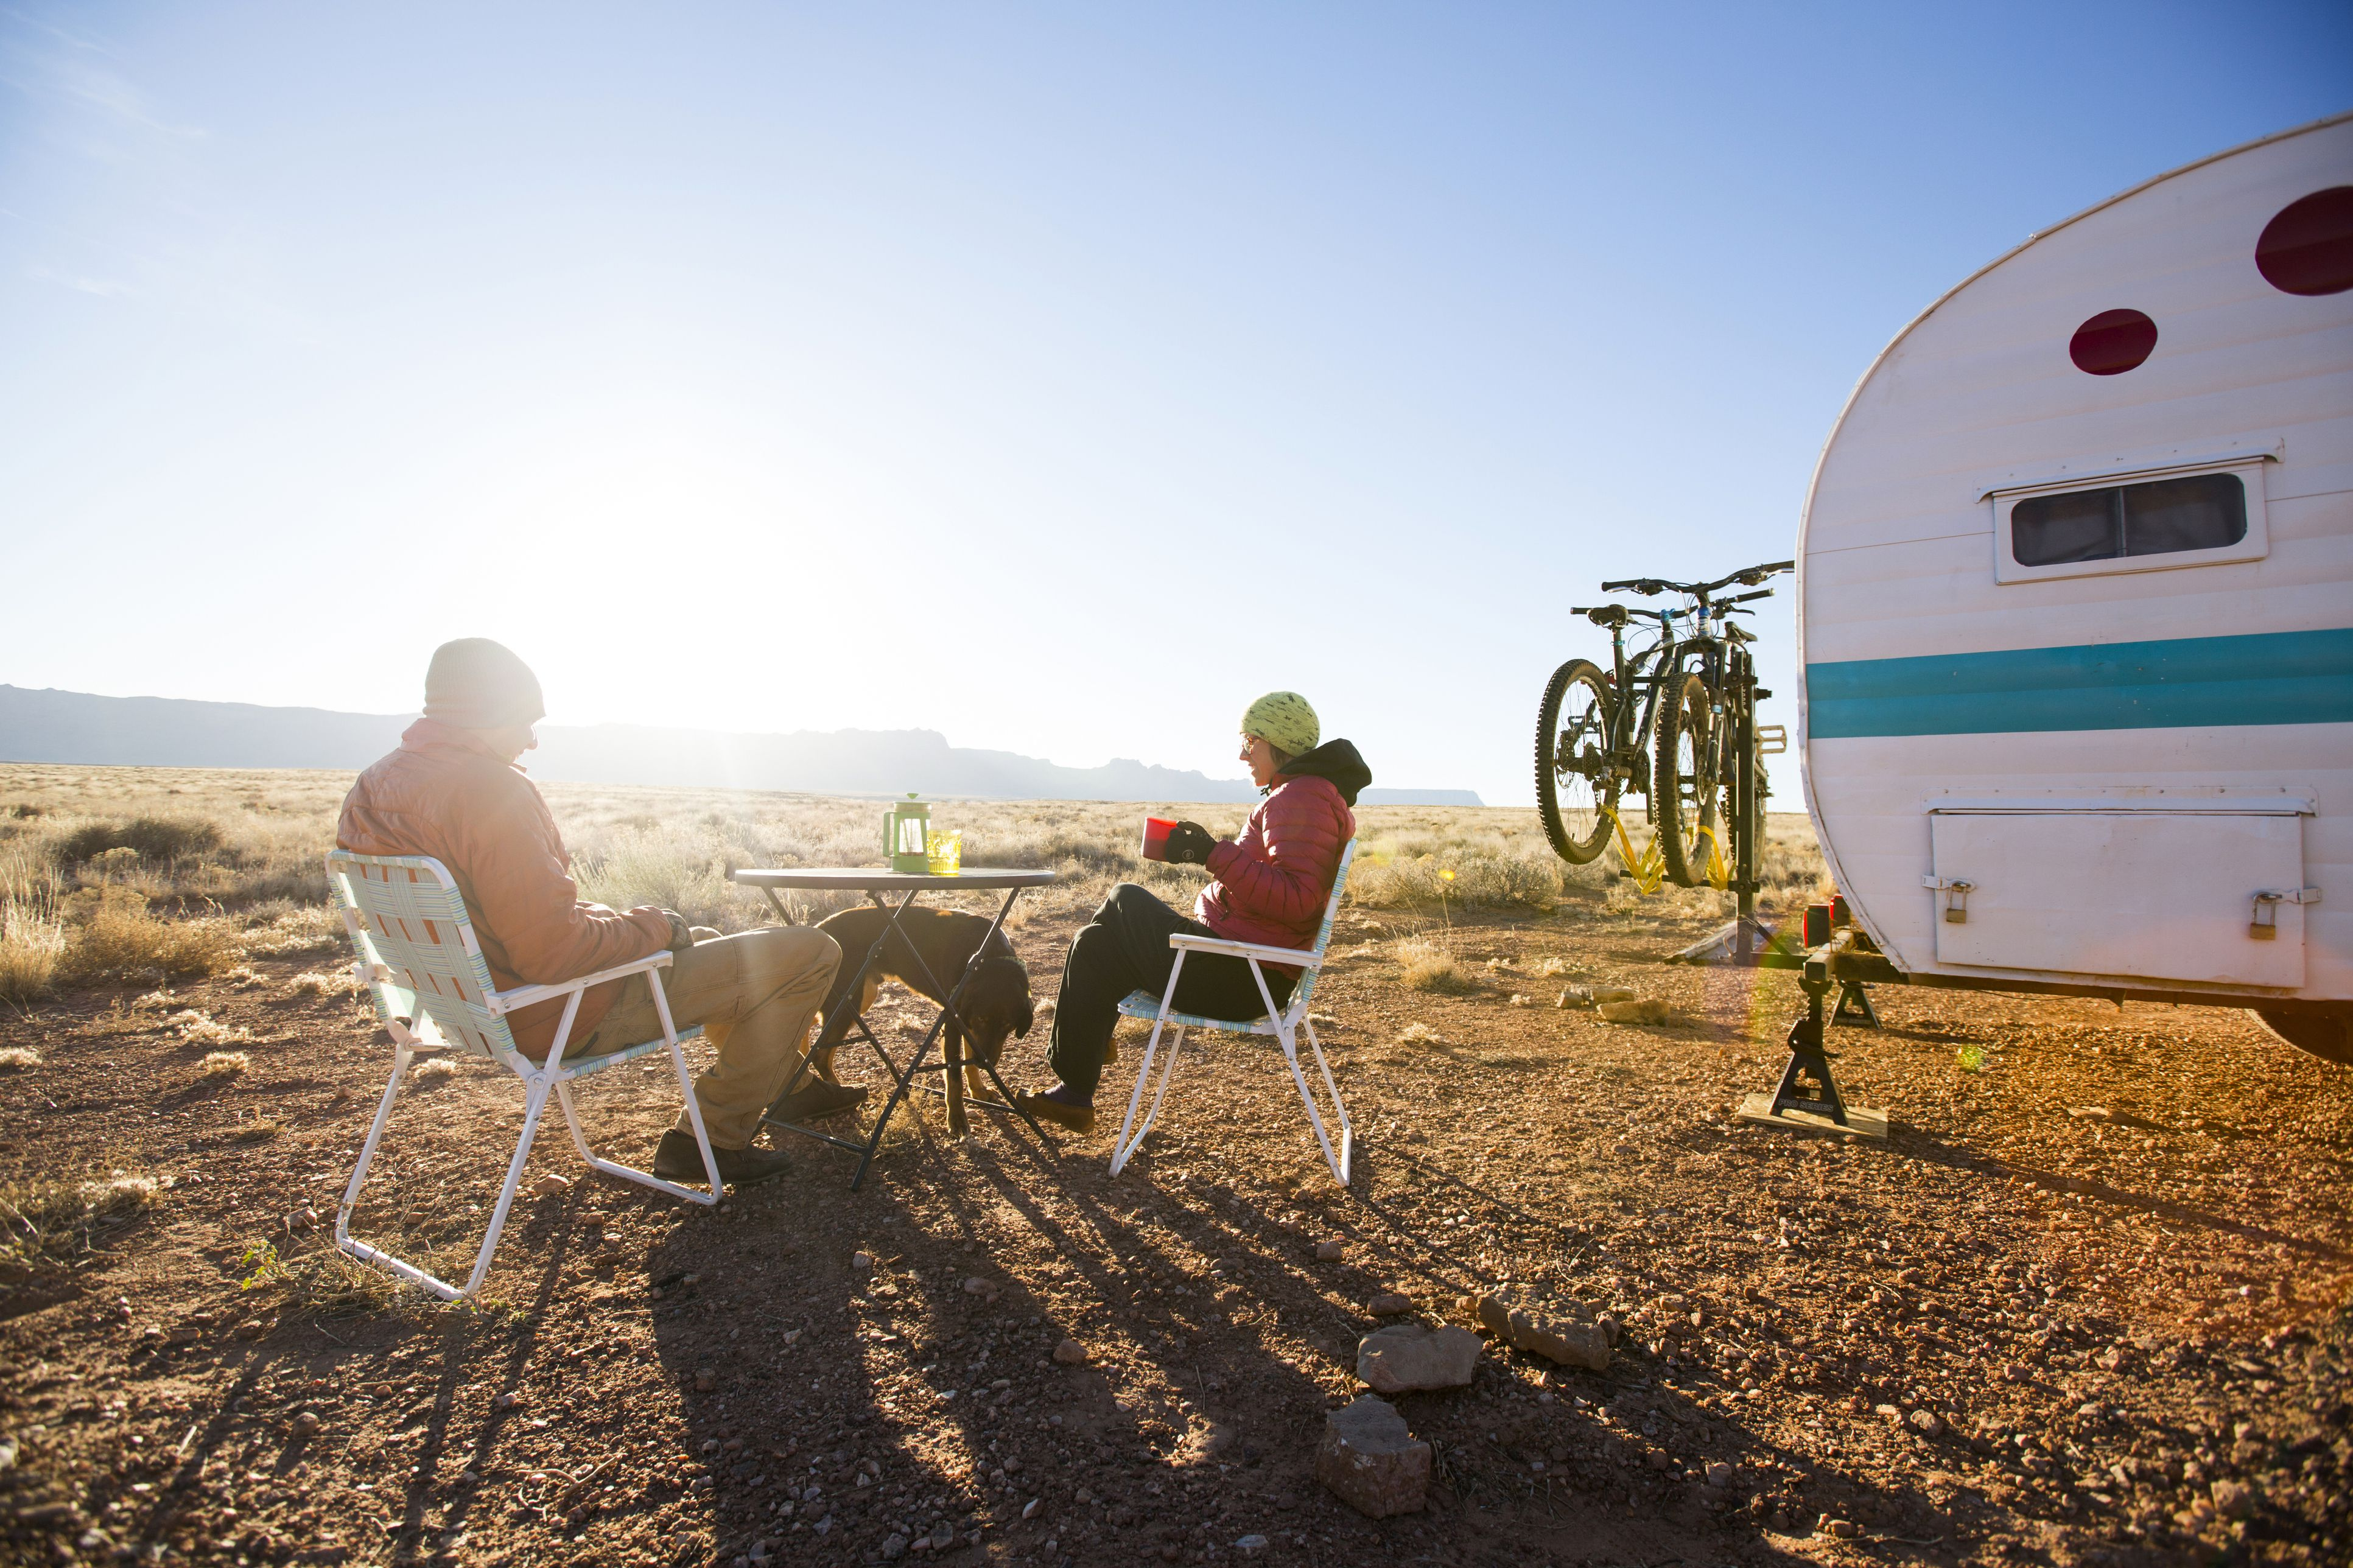 RV Travel Pros and Cons